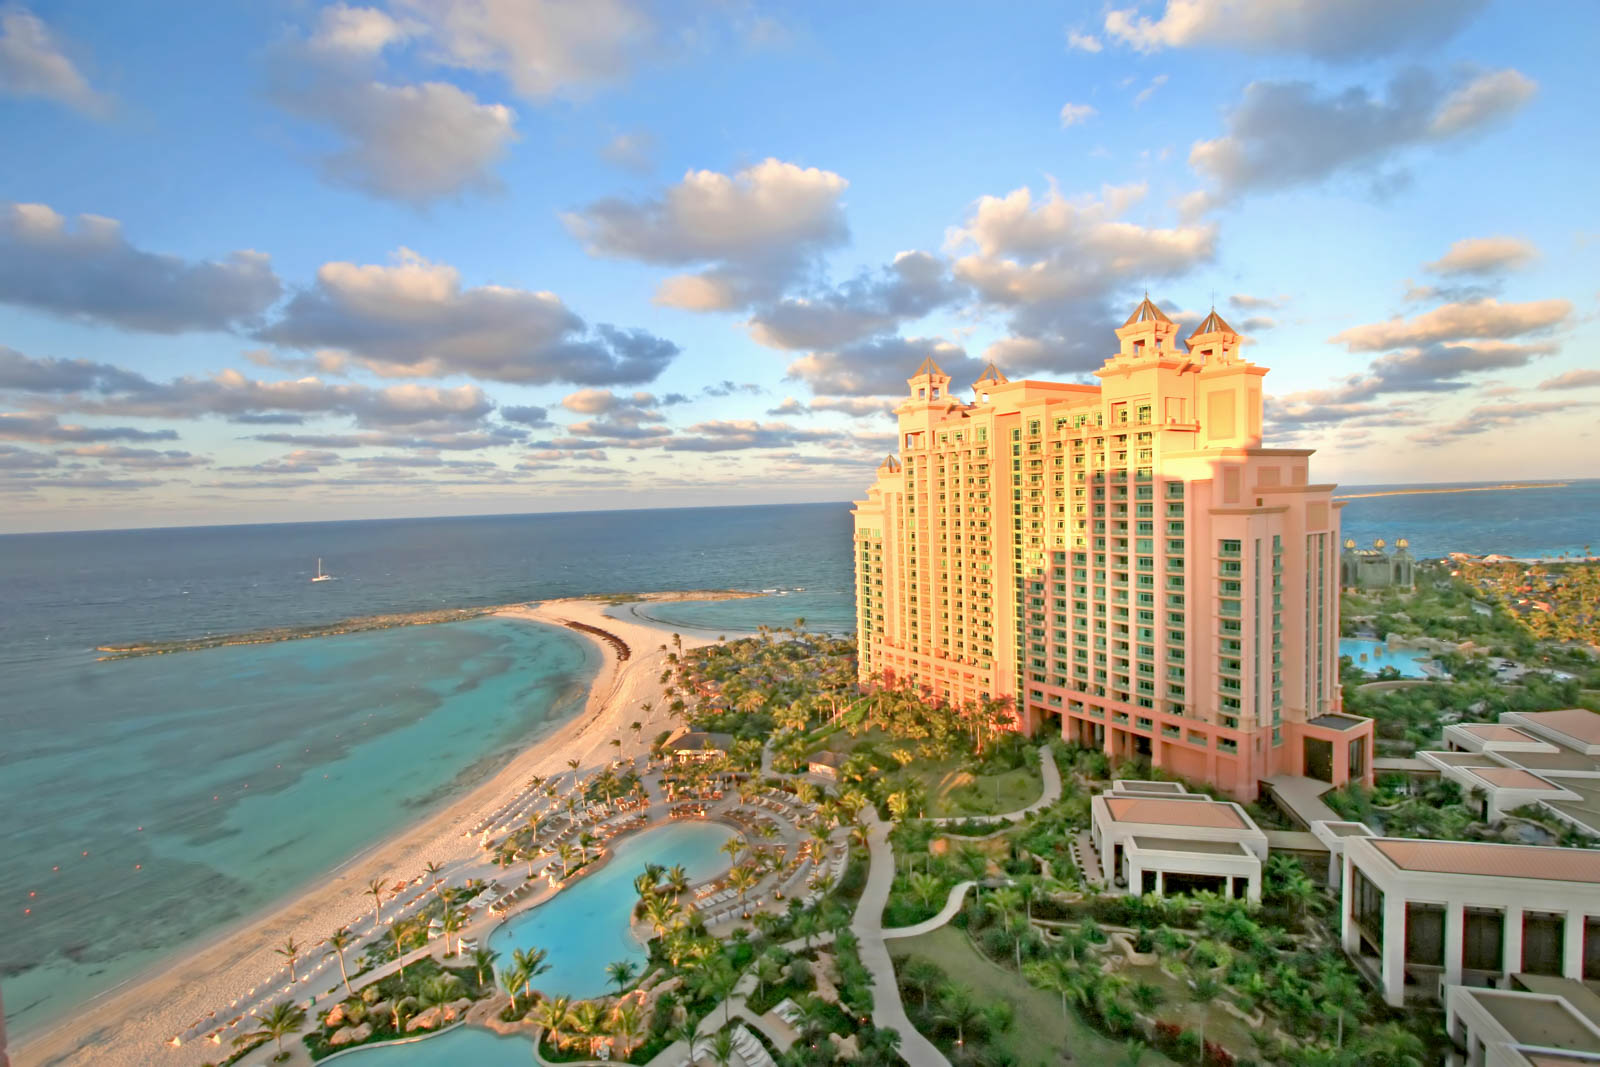 Paradise Island, Bahamas - Looking toward The Cove Atlantis from The Reef Atlantis at Atlantis Paradise Island Bahamas. A guide to know al the things to do in Atlantis Bahamas and the best things to do in Nassau.